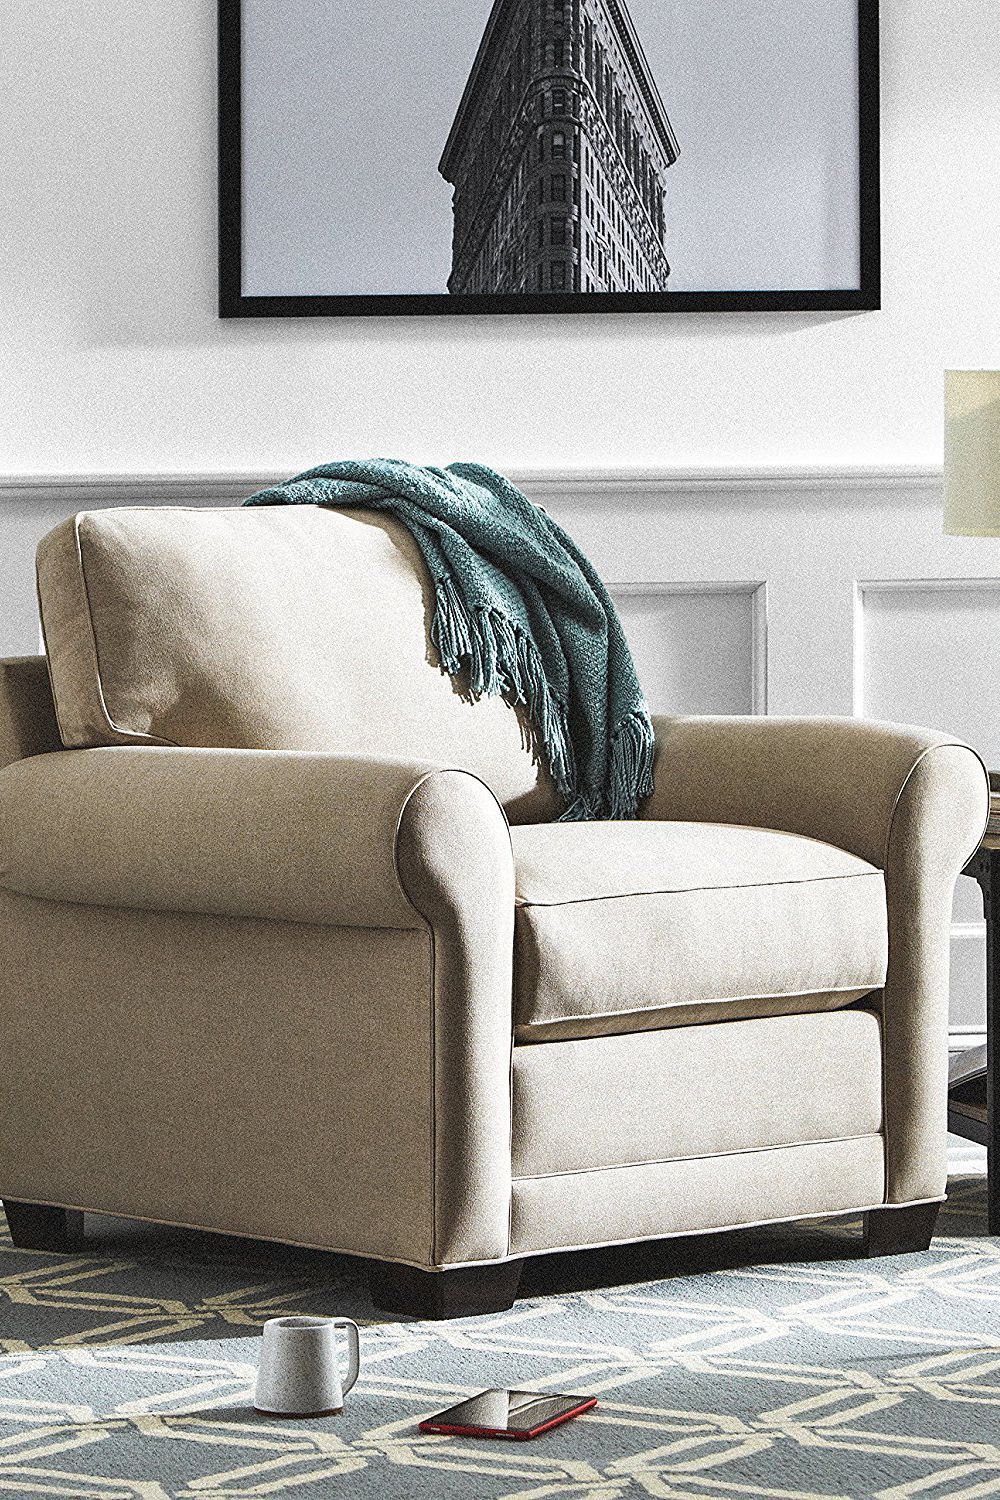 These Comfy Chairs Are As Pretty As They Are Cozy Comfy Living Room Comfortable Living Room Chairs Small Comfy Chair